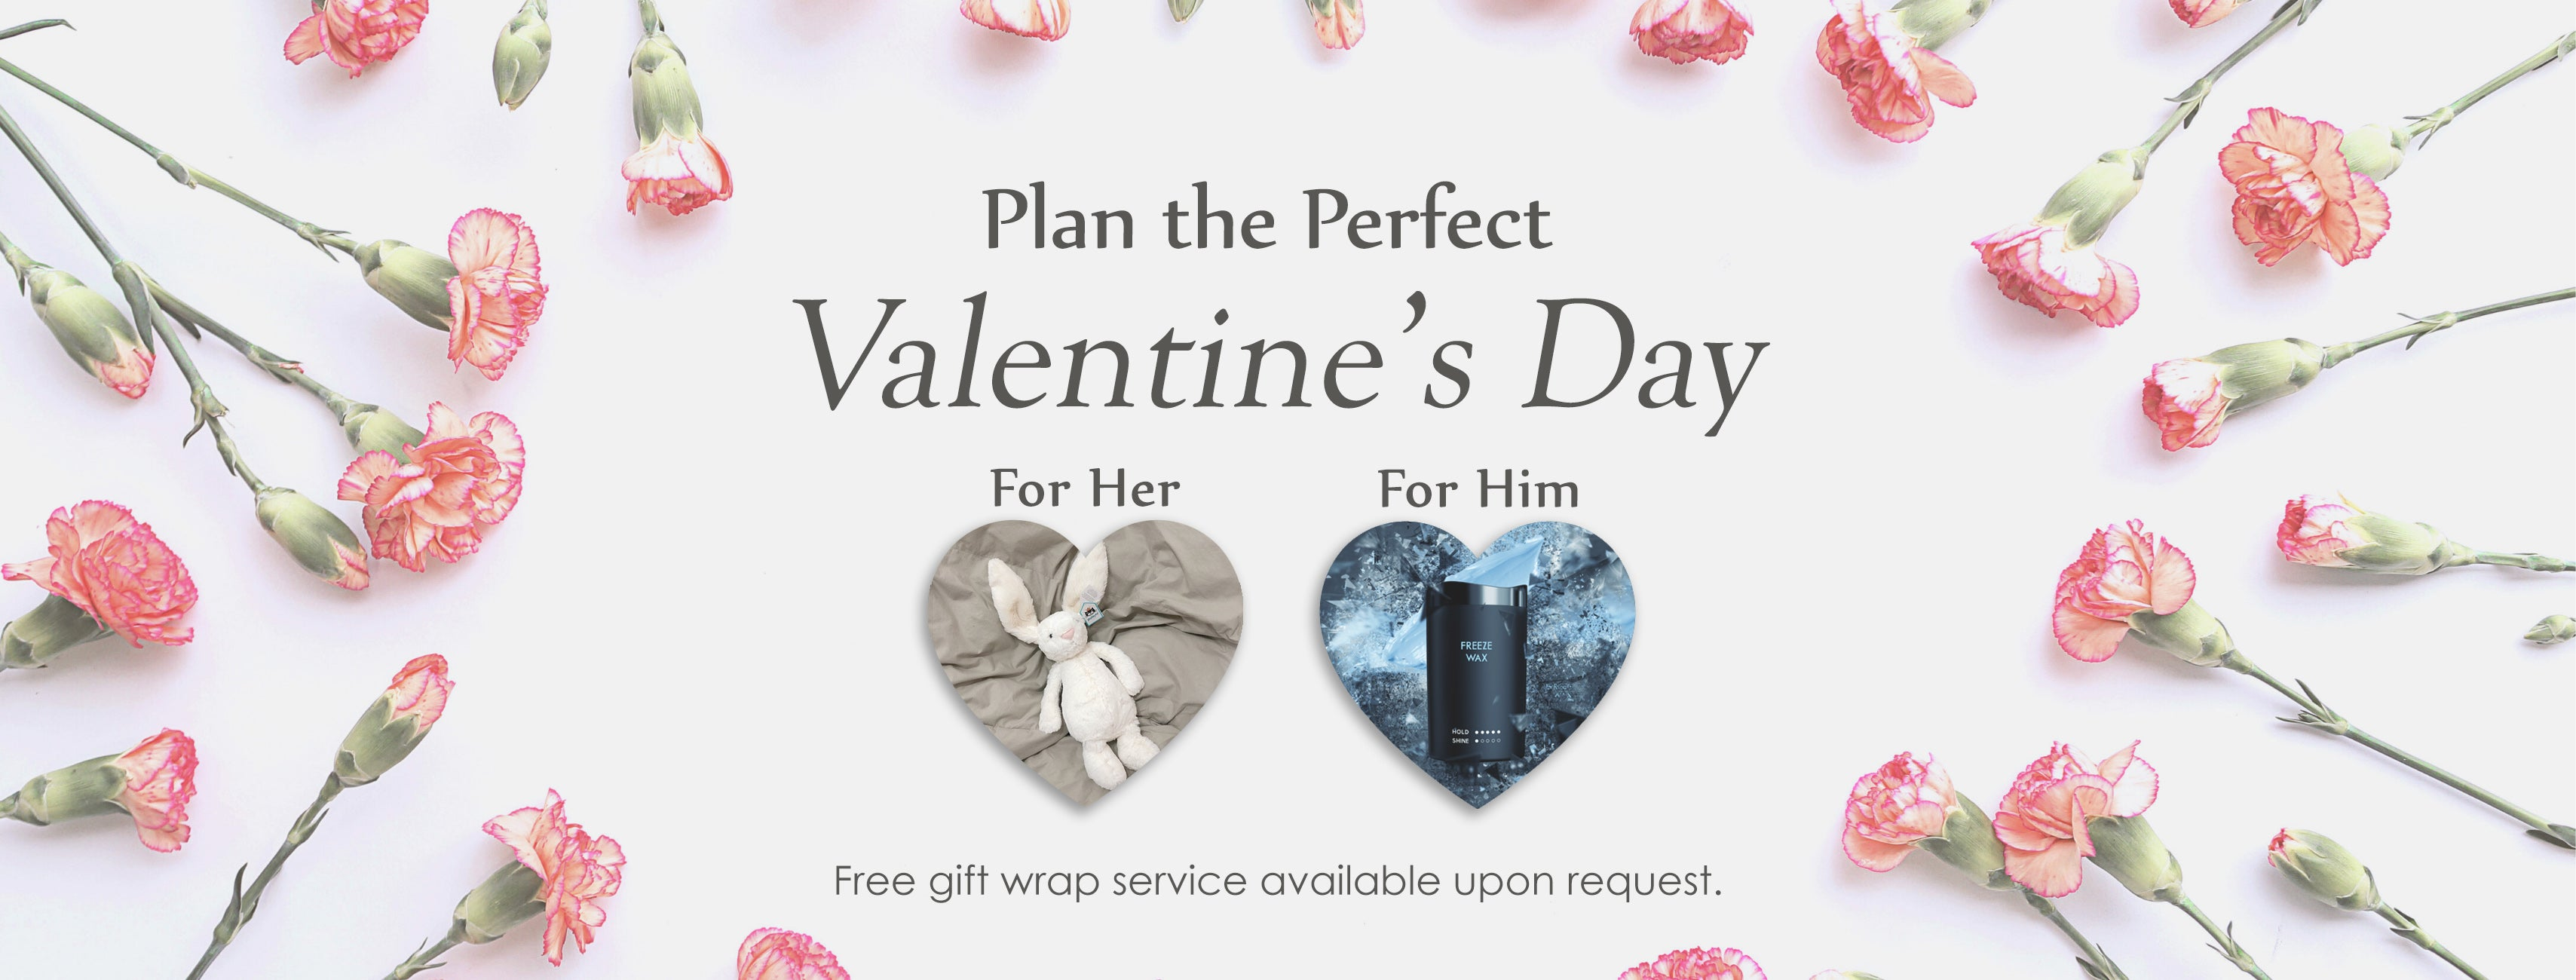 Valentine's Day 2020- Gift Ideas